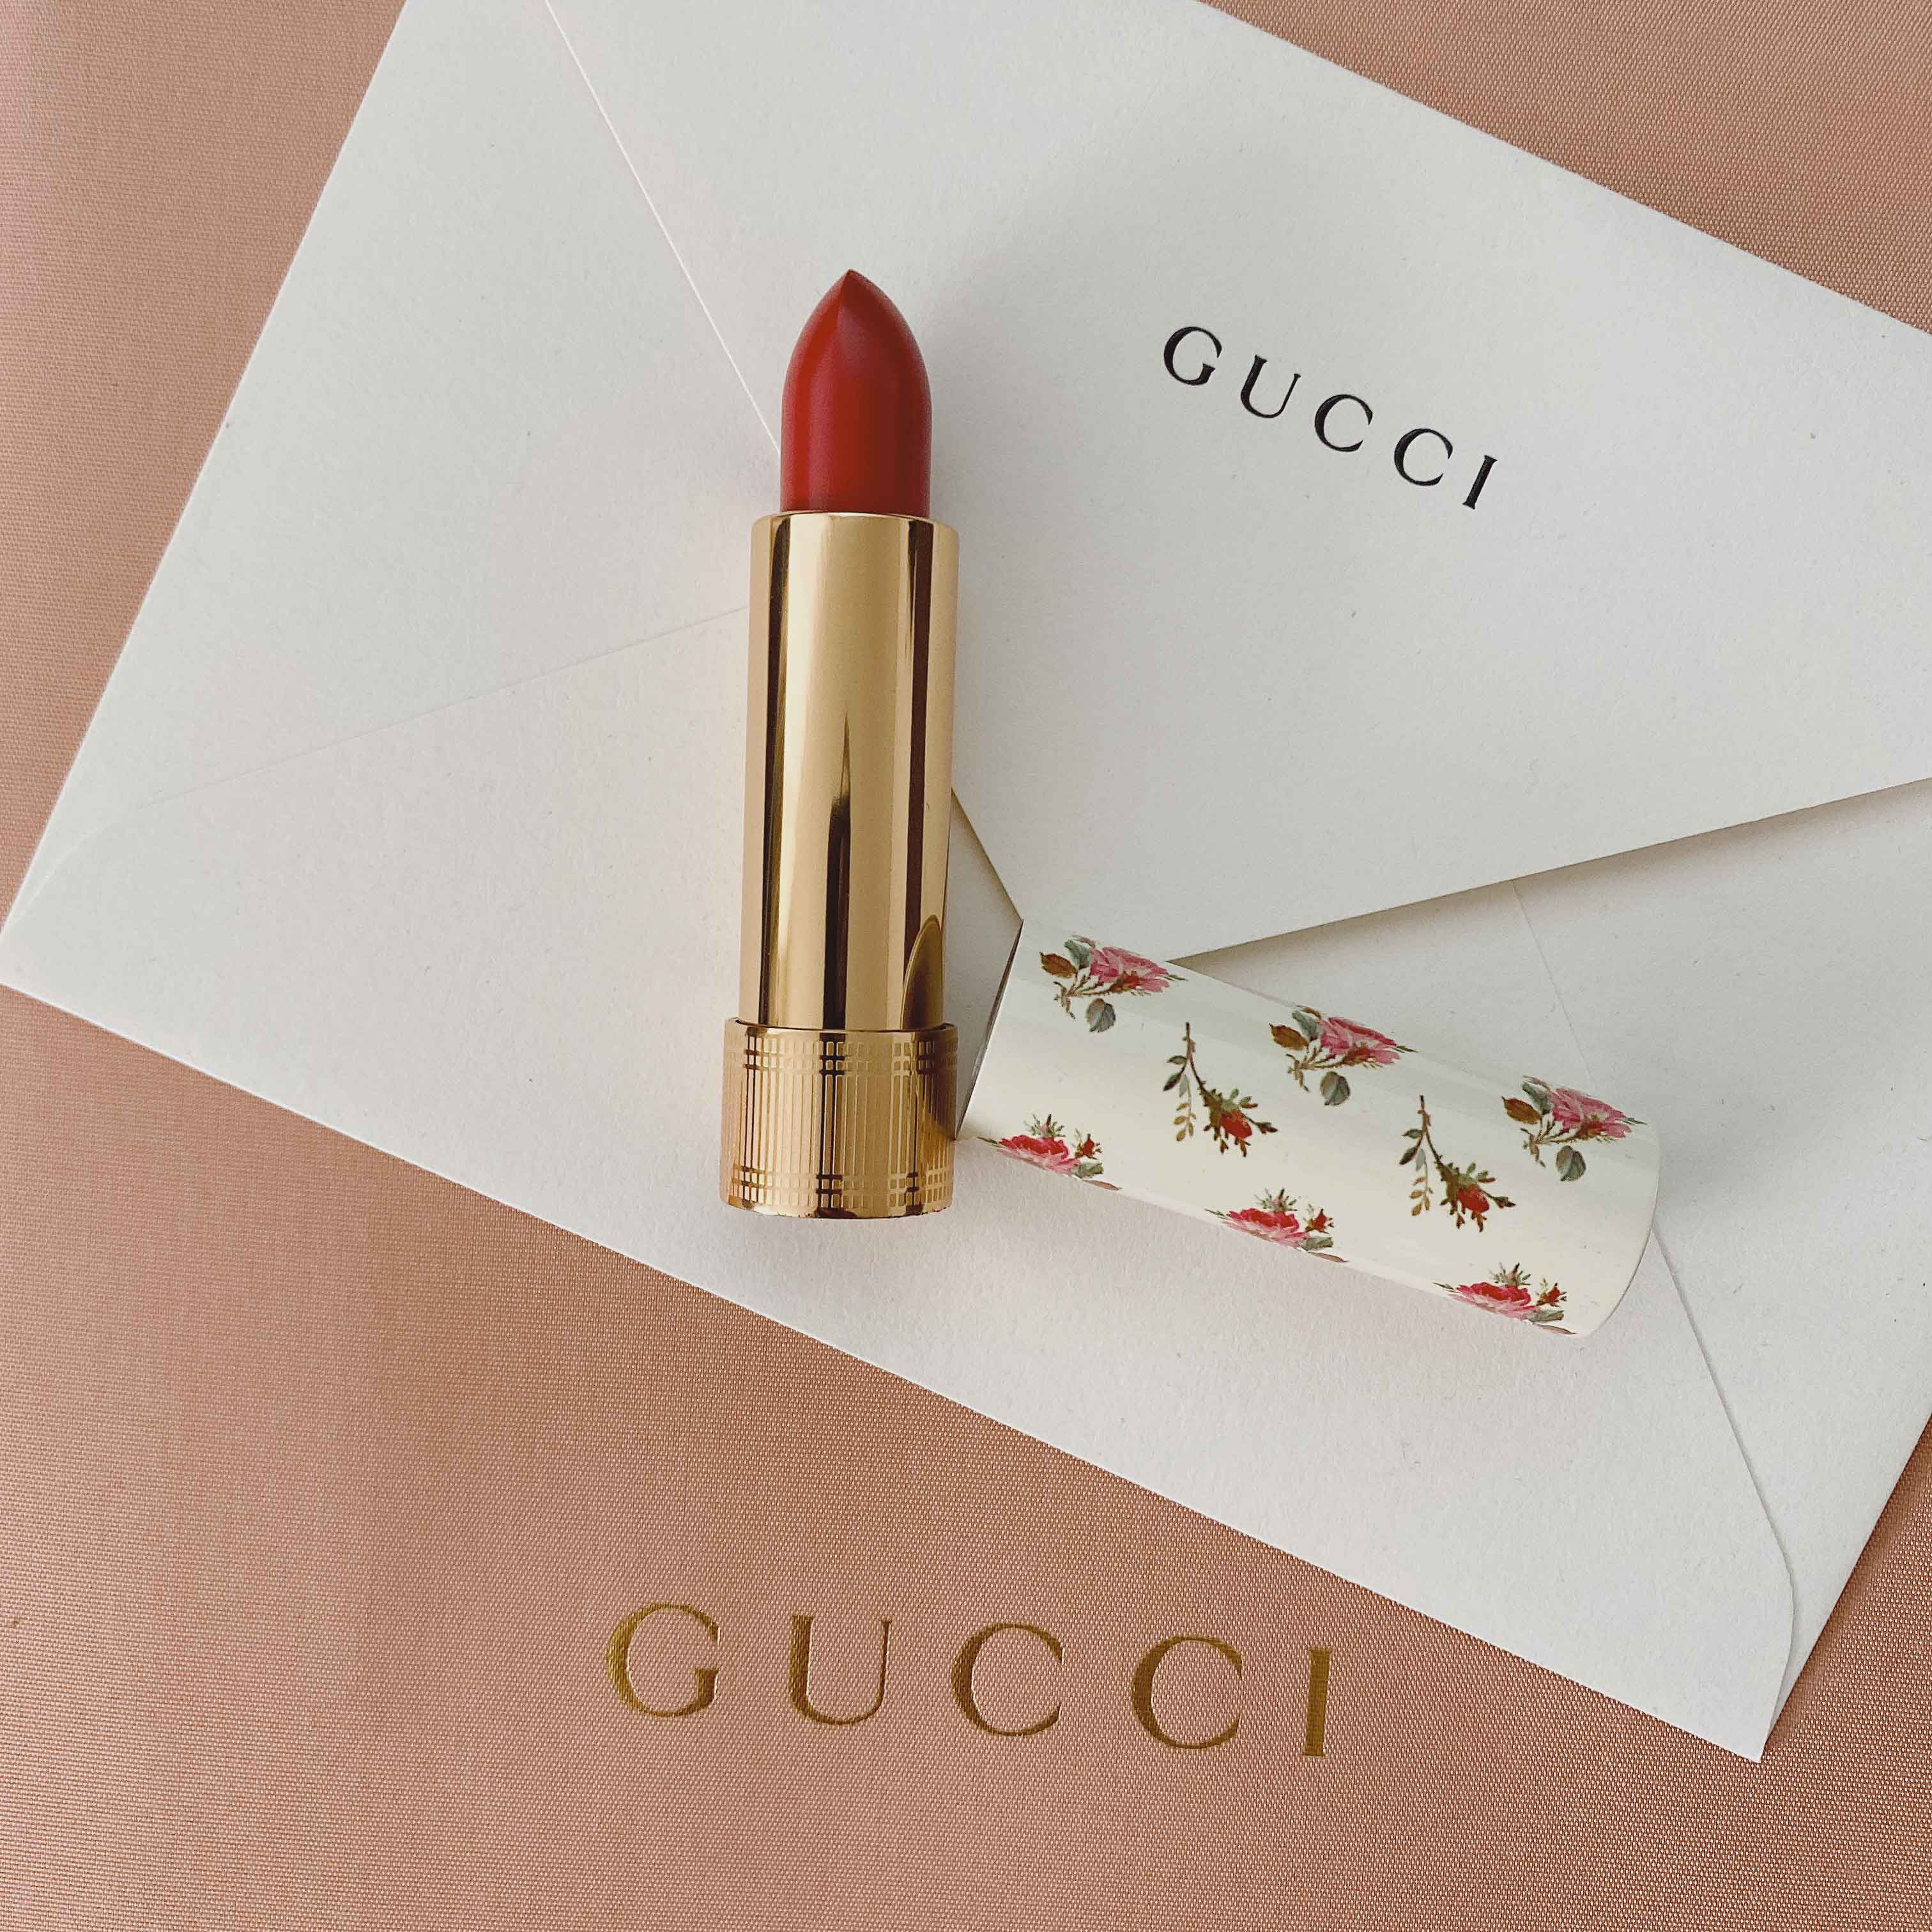 Holiday gift guide for women 2019 – Affordable luxury gift ideas - Gucci lipstick